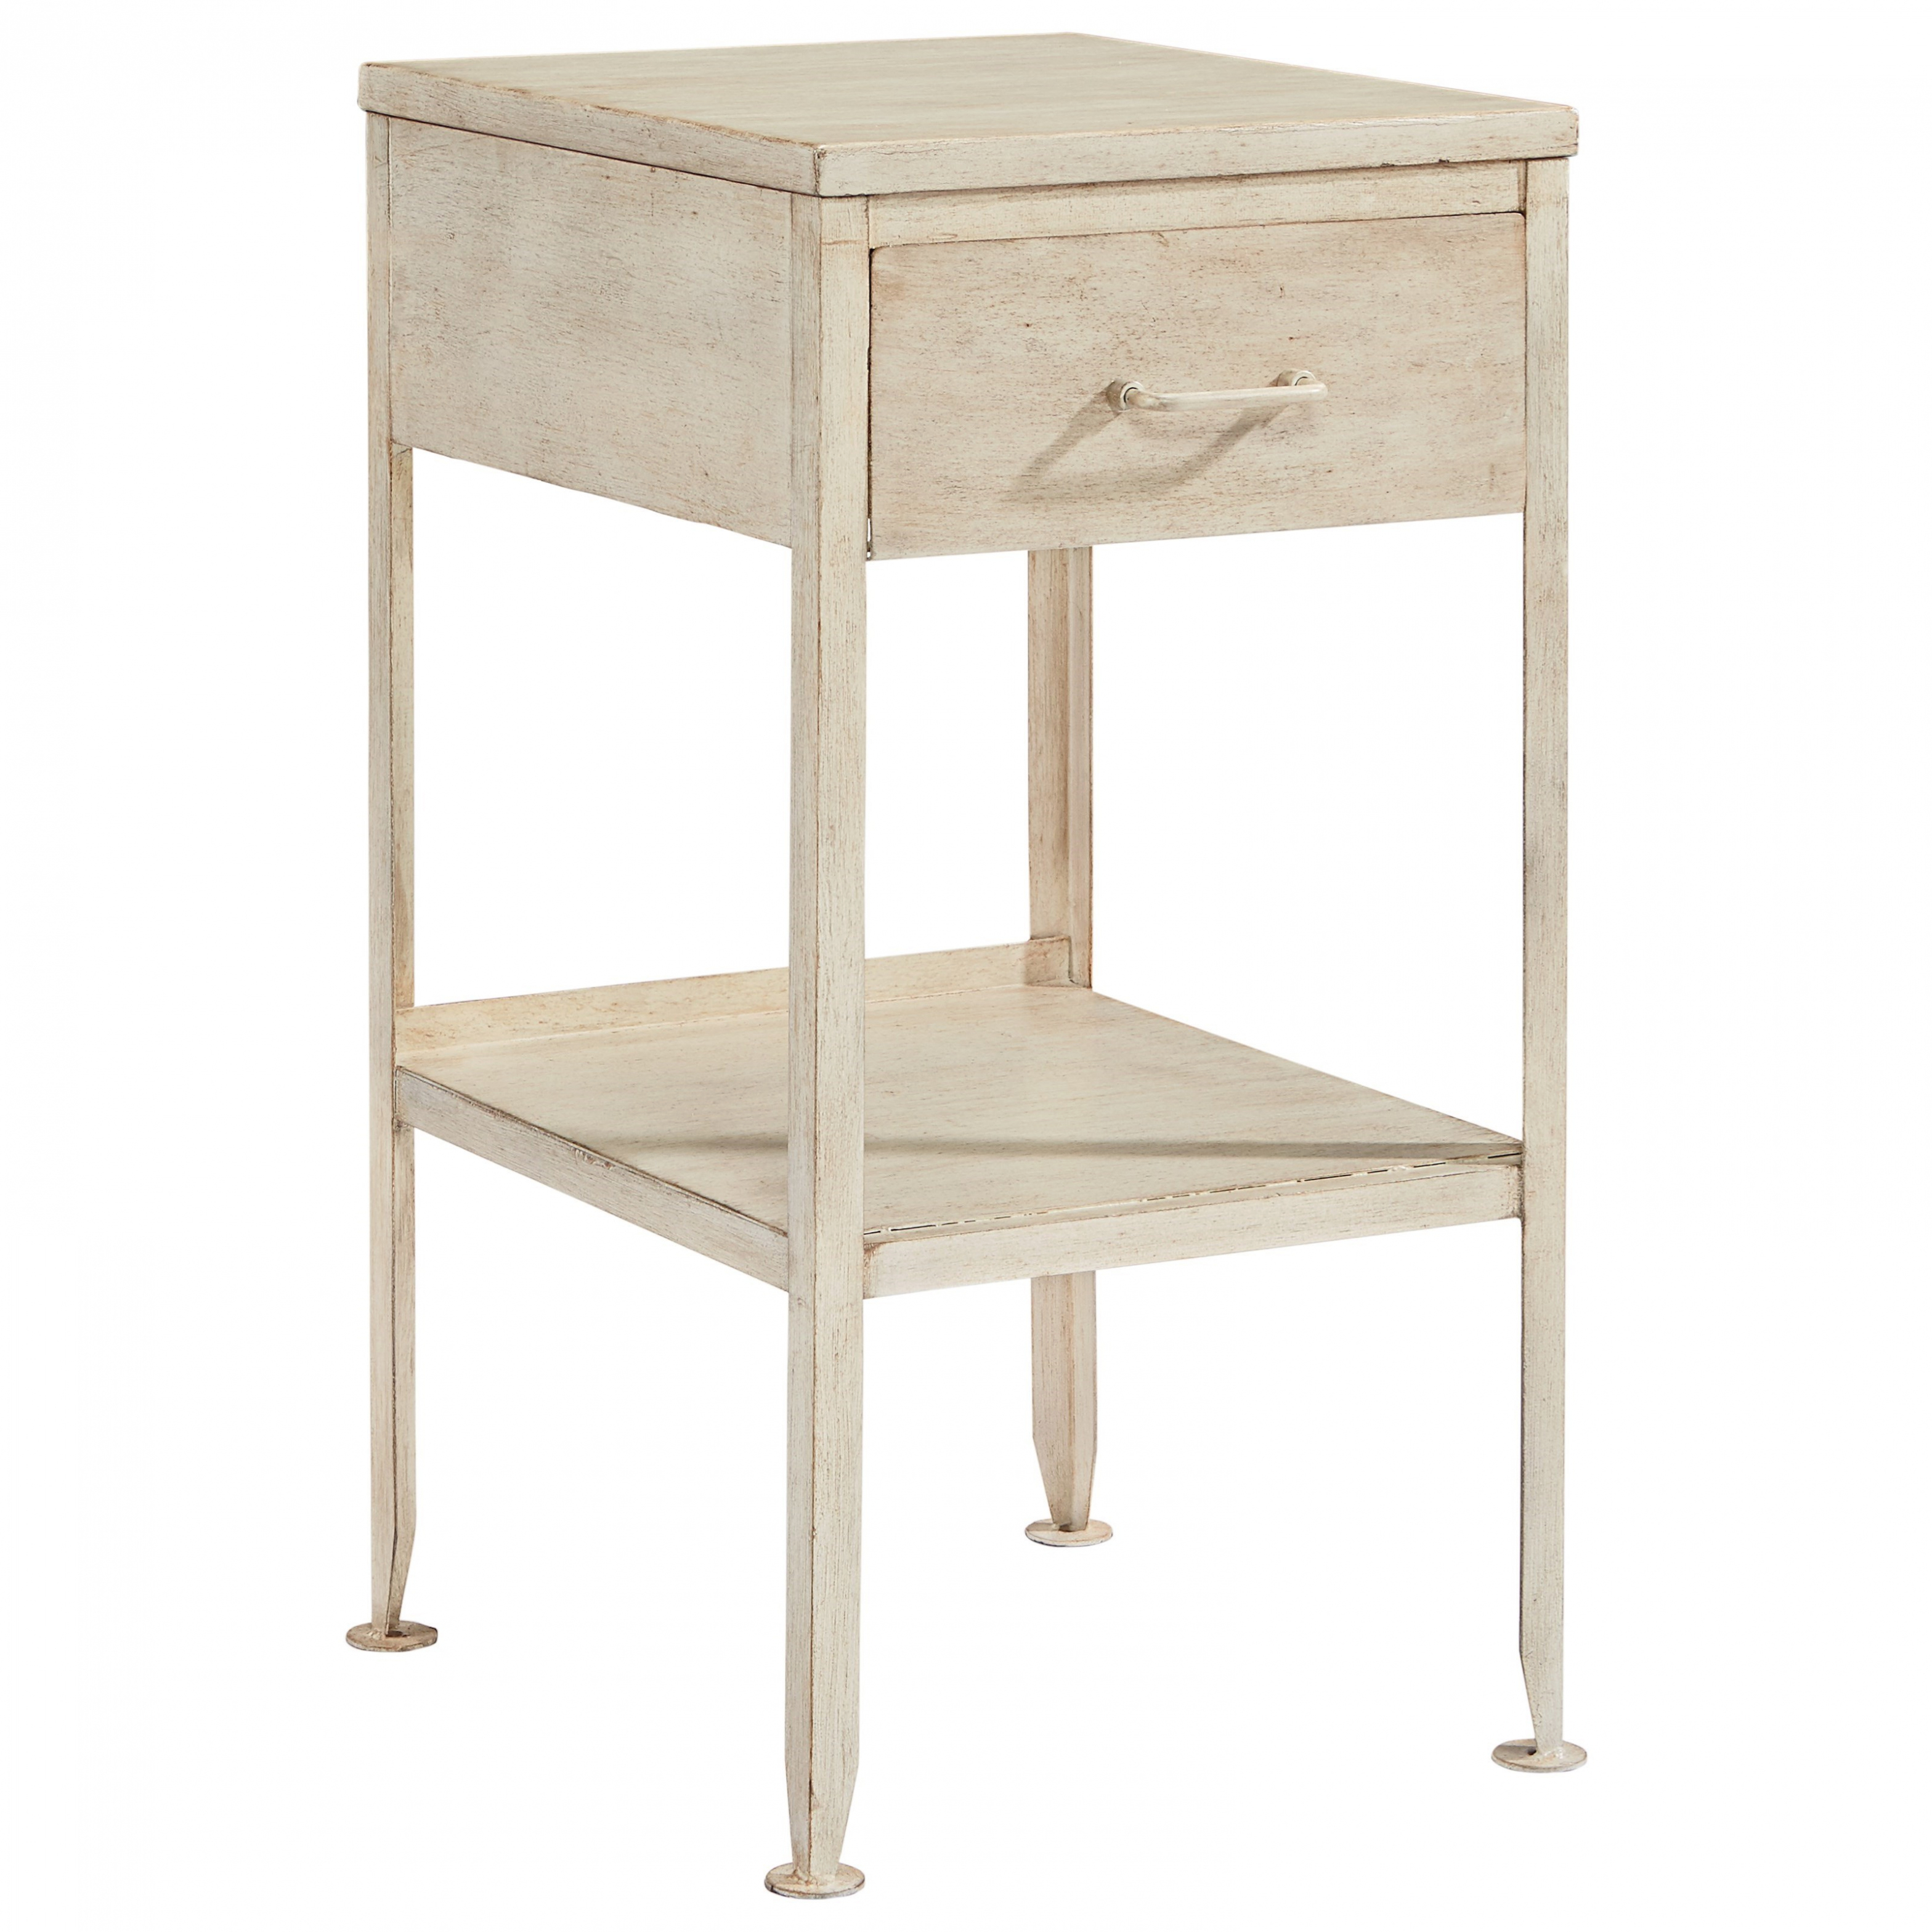 furniture magnolia homejoanna gaines accent elements small metal end table with regard drawer very chic for your home concept wrought iron tables living room glass dining and